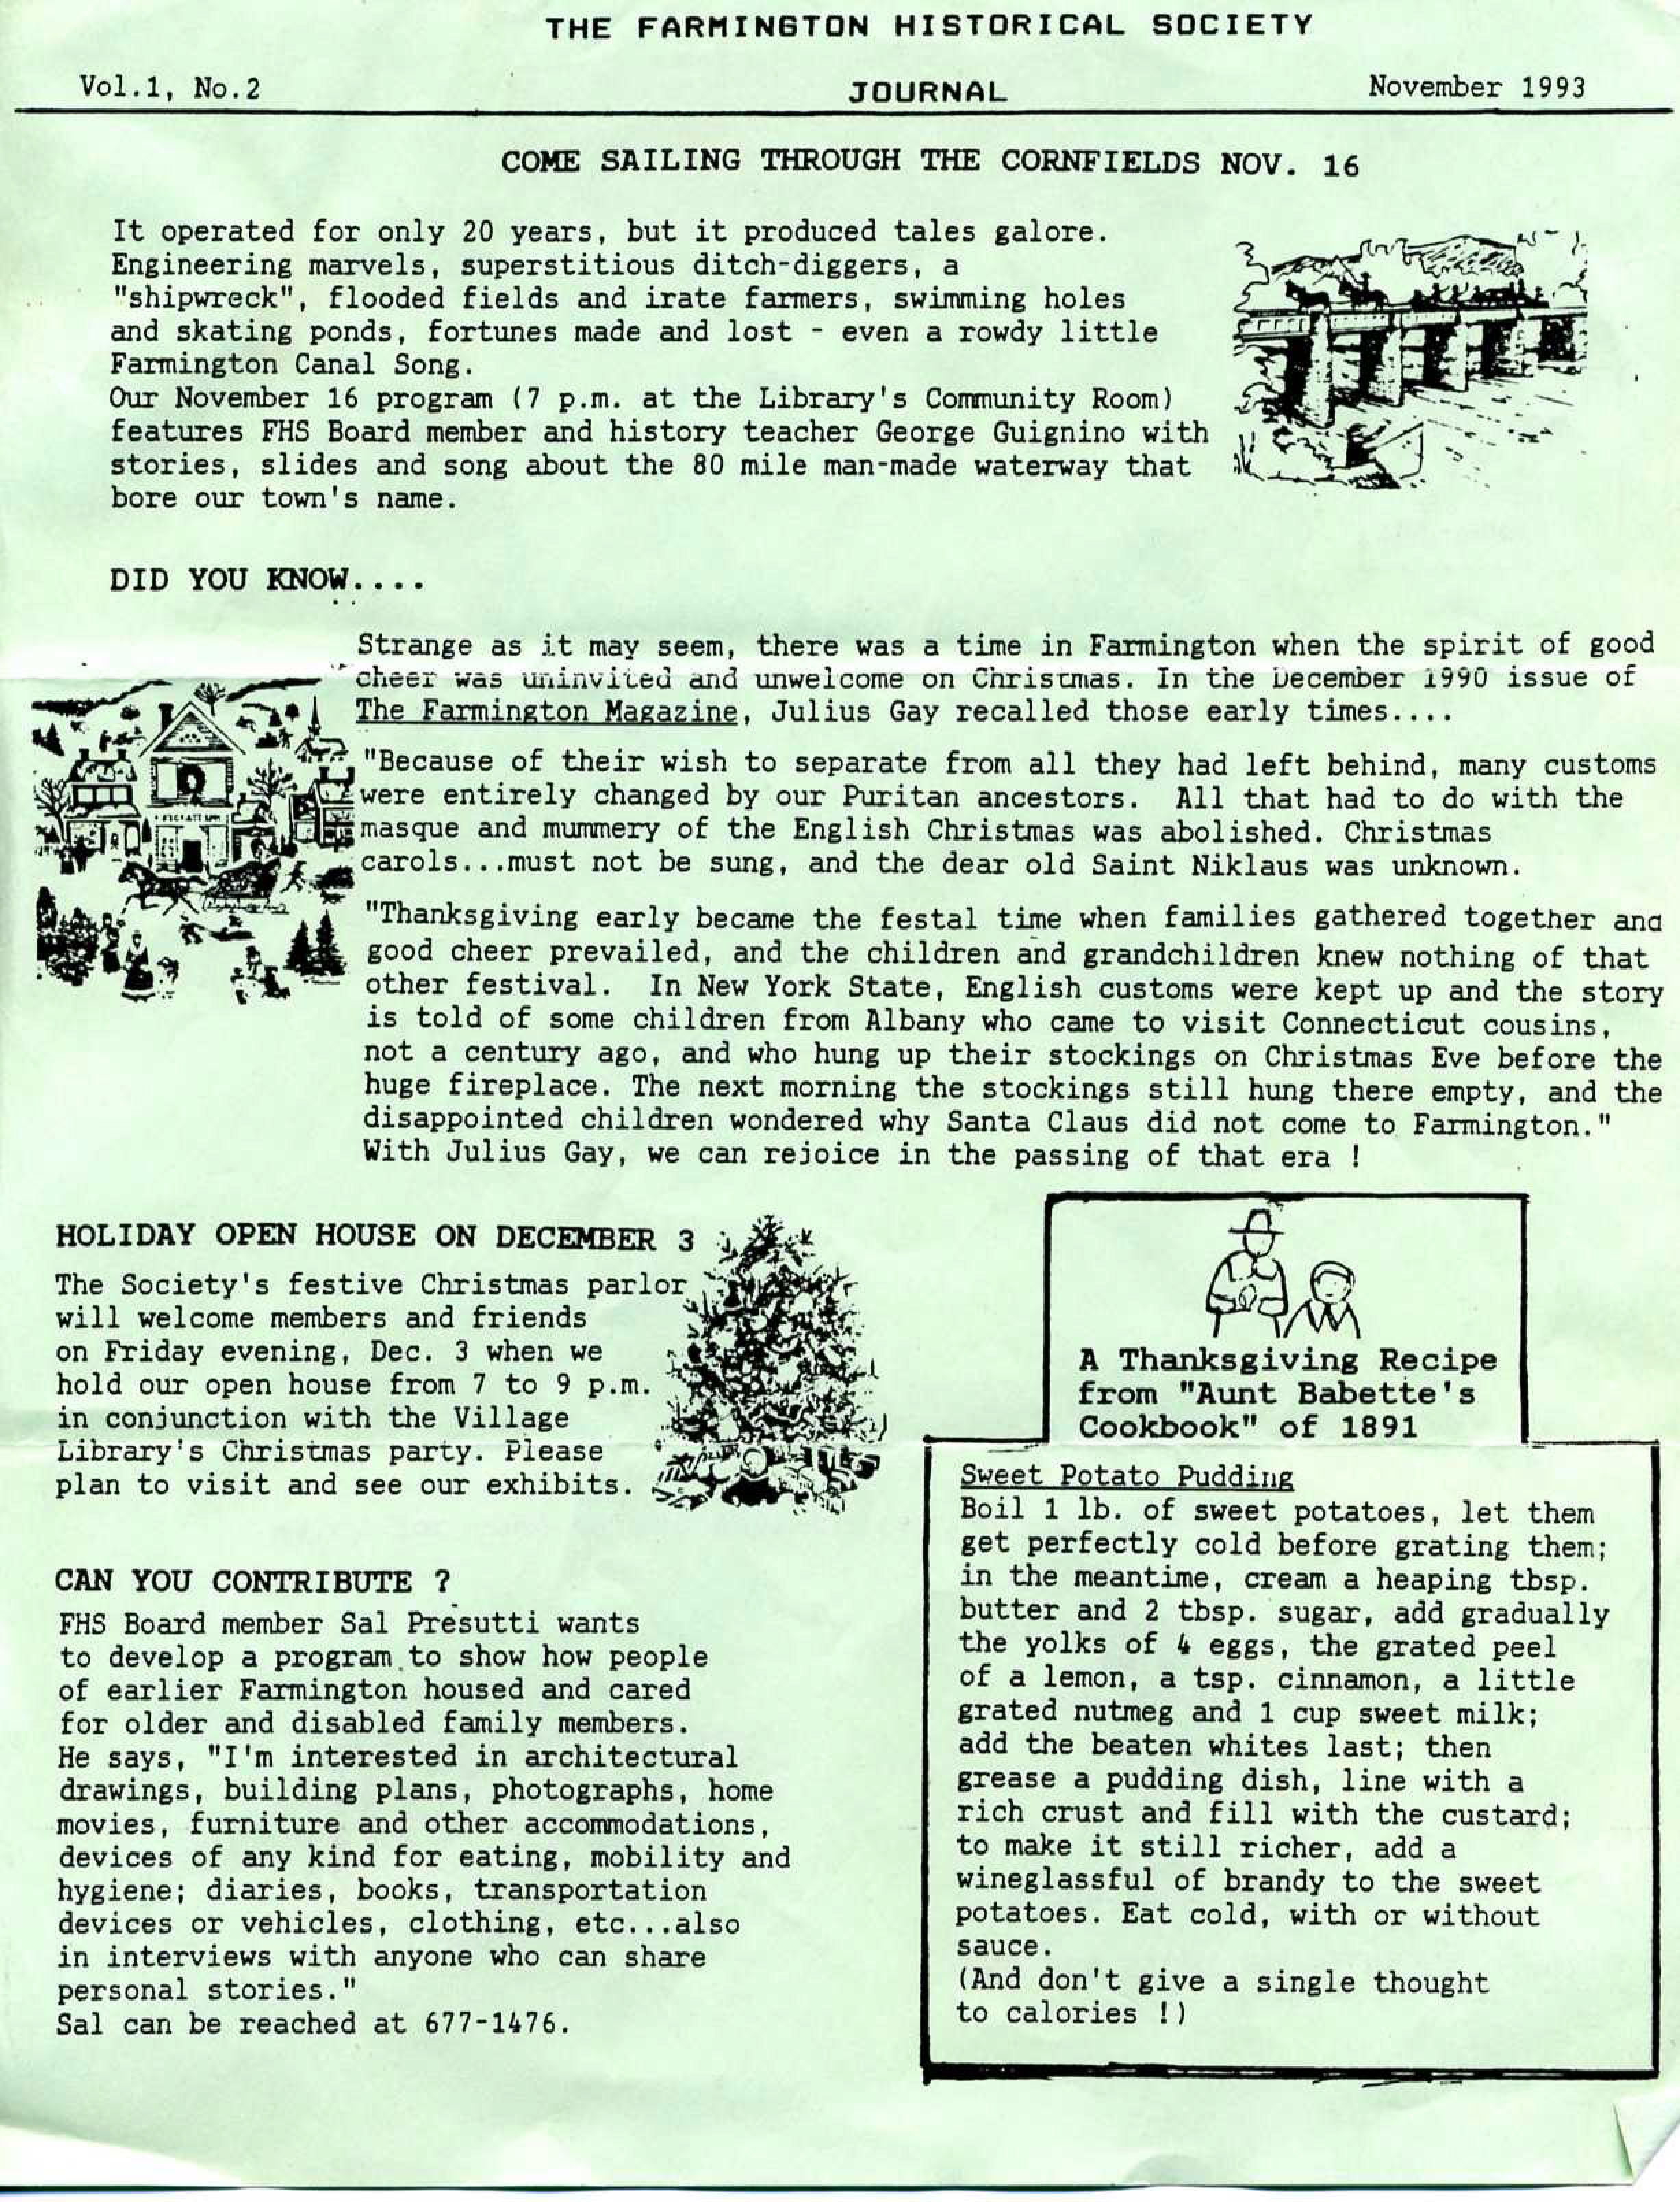 http://fhs-ct.org/1993/11/09/november-1993-newsletter/